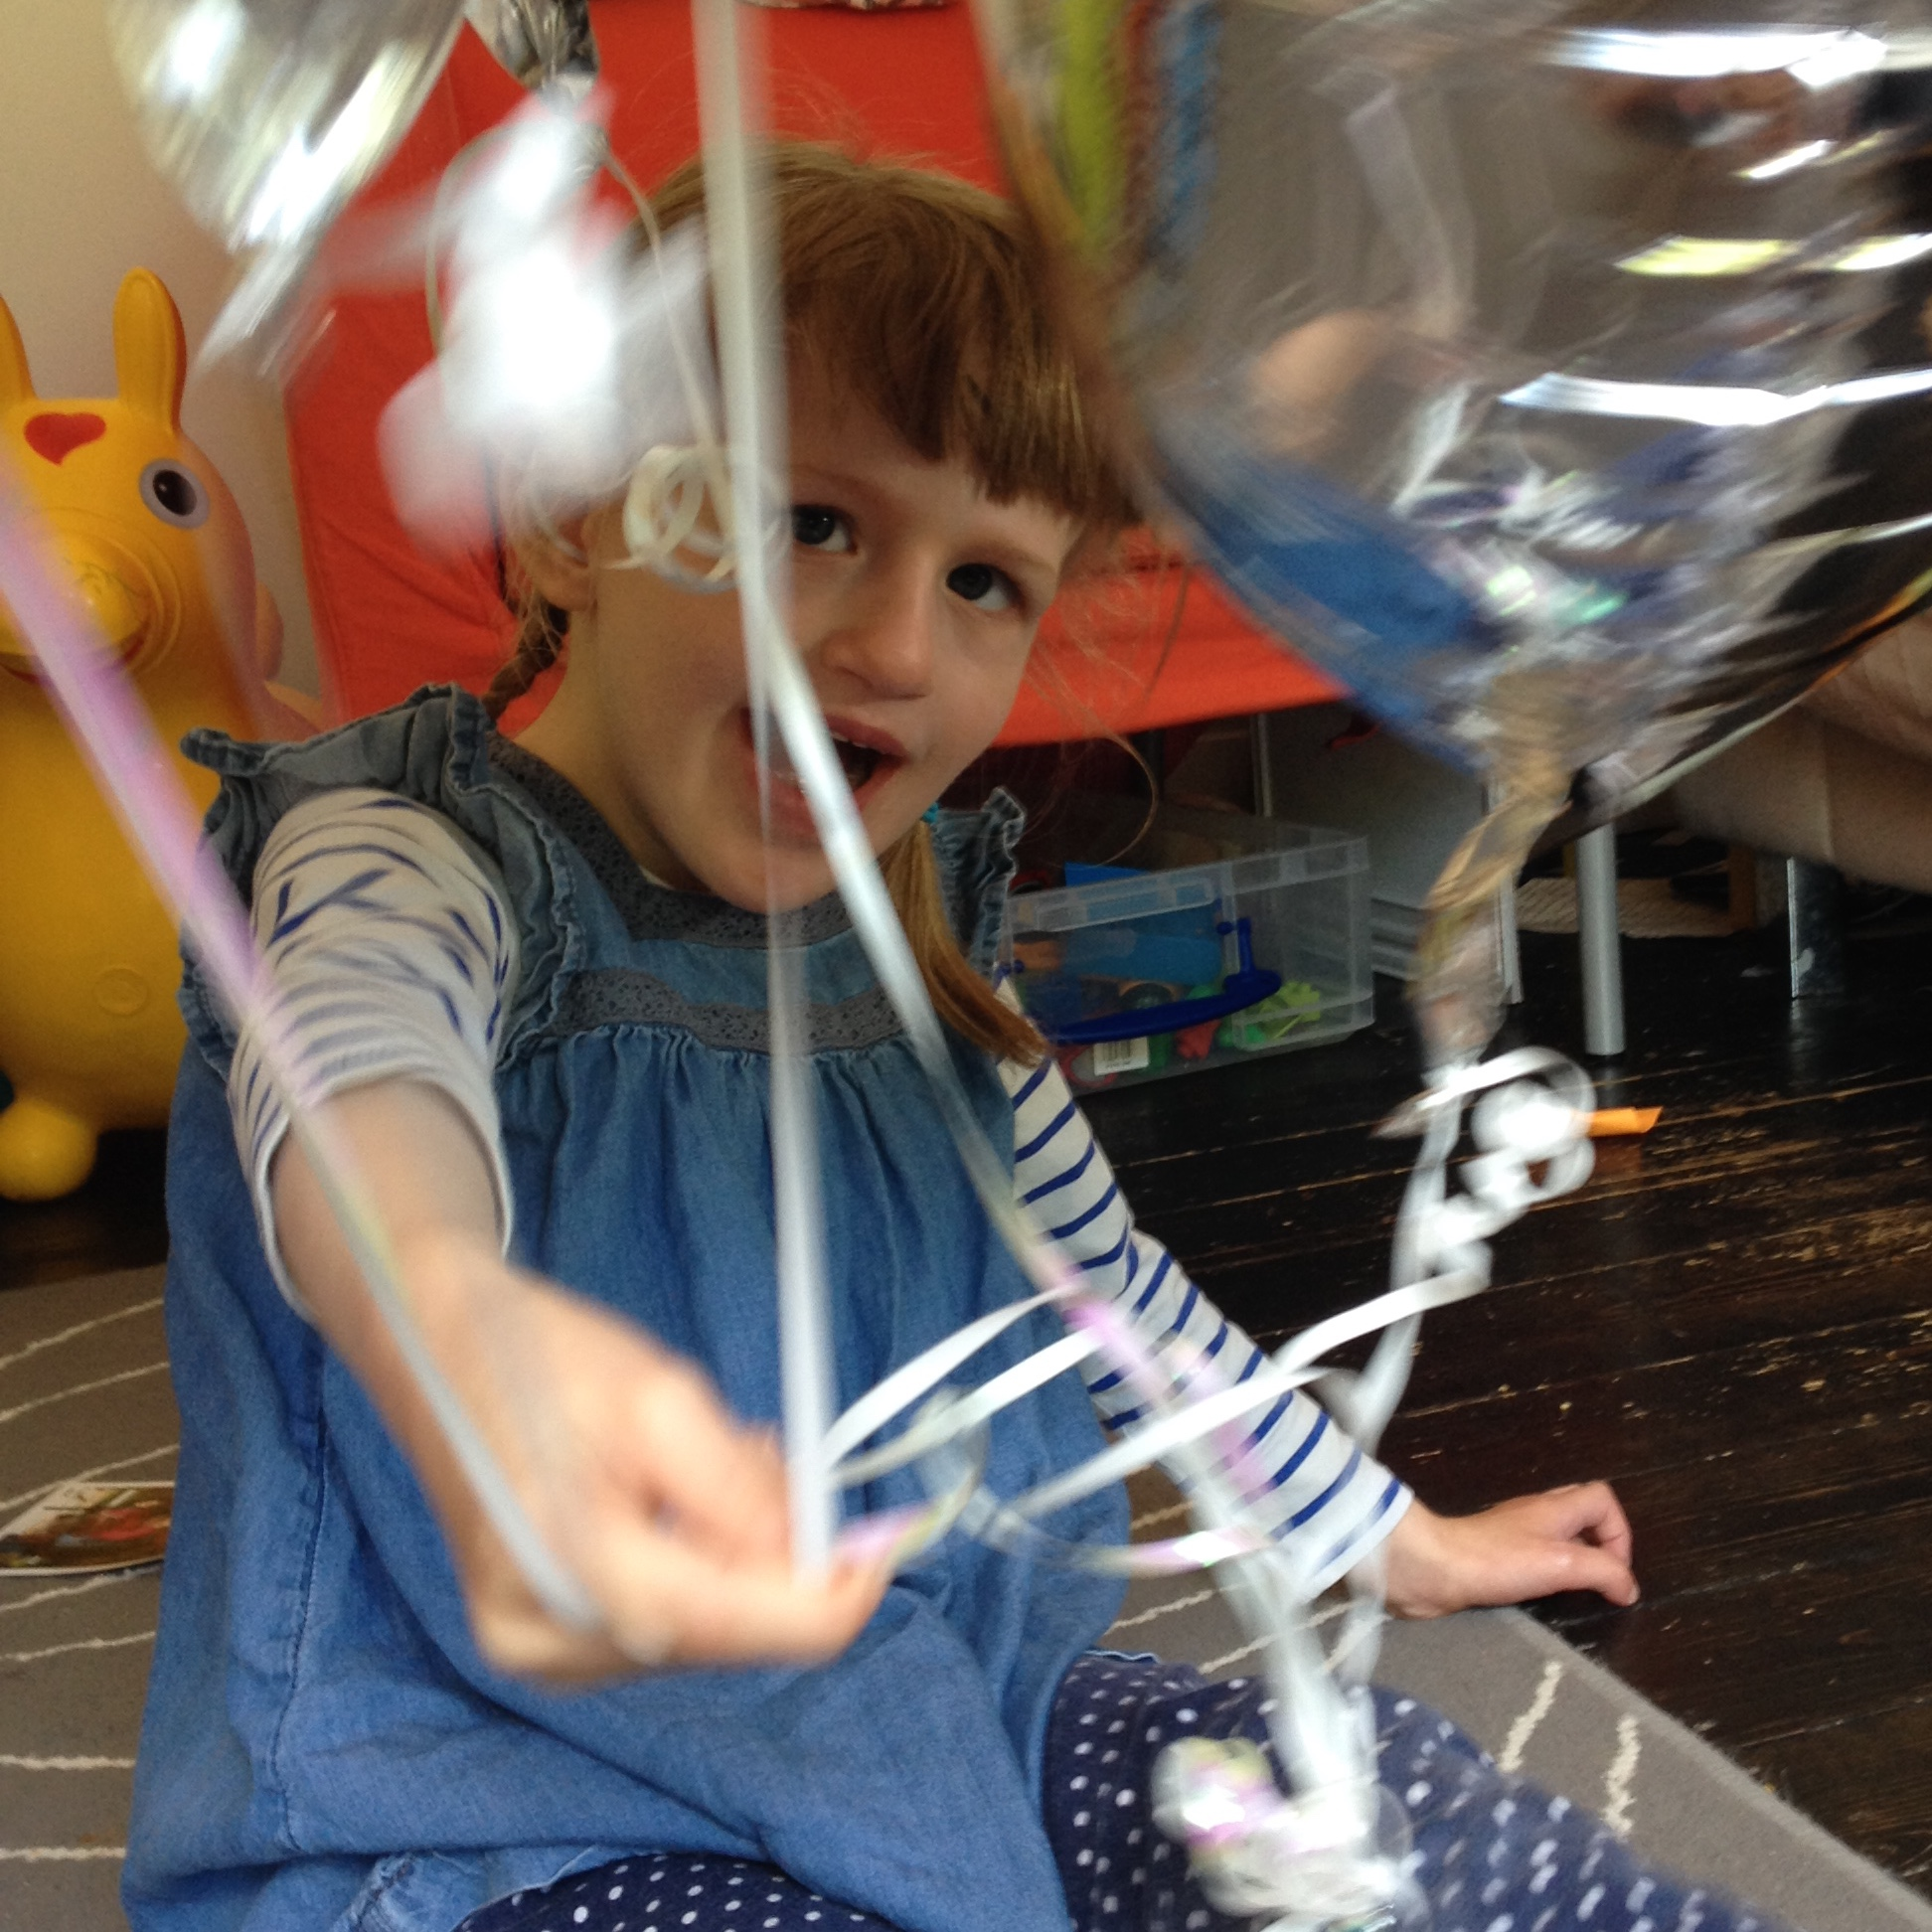 EJ playing with some foil balloons